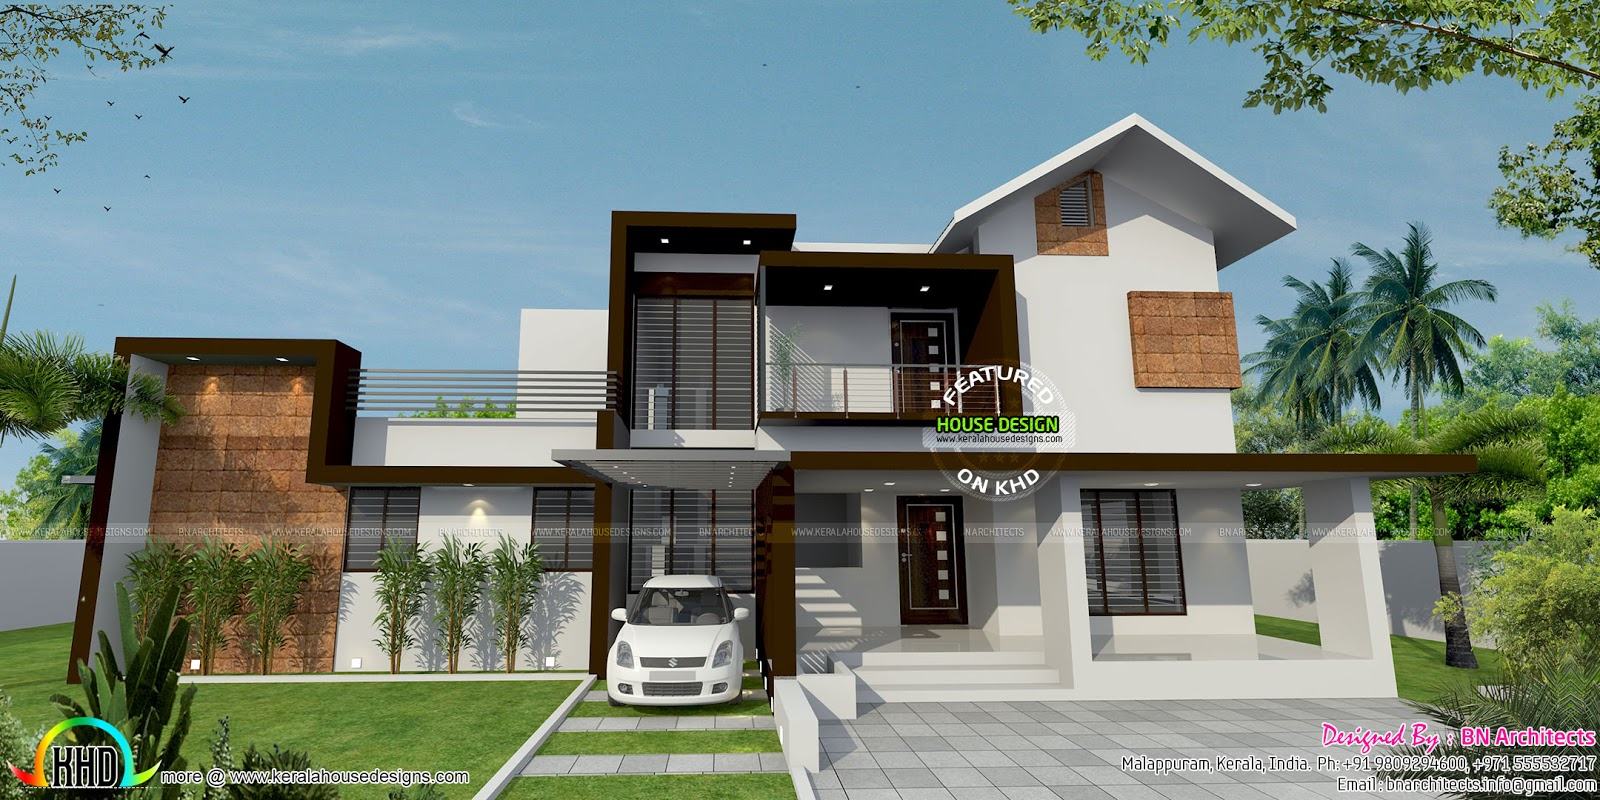 Architecture Design Kerala Model january 2016 - kerala home design and floor plans